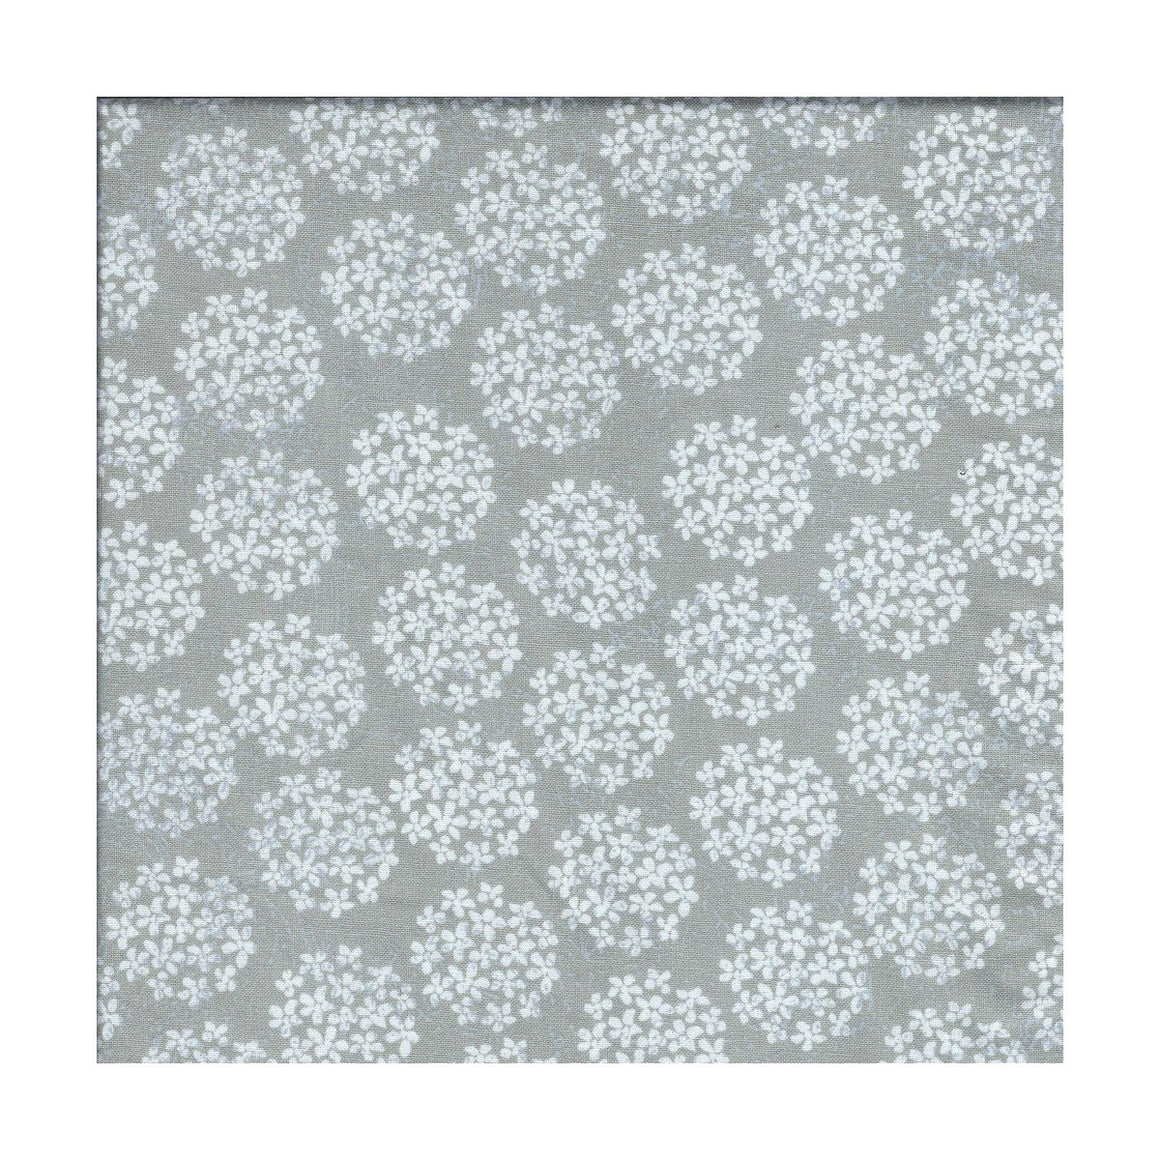 bandana, gray and white floral, exclusive, unique to bazooka bandanas, grey